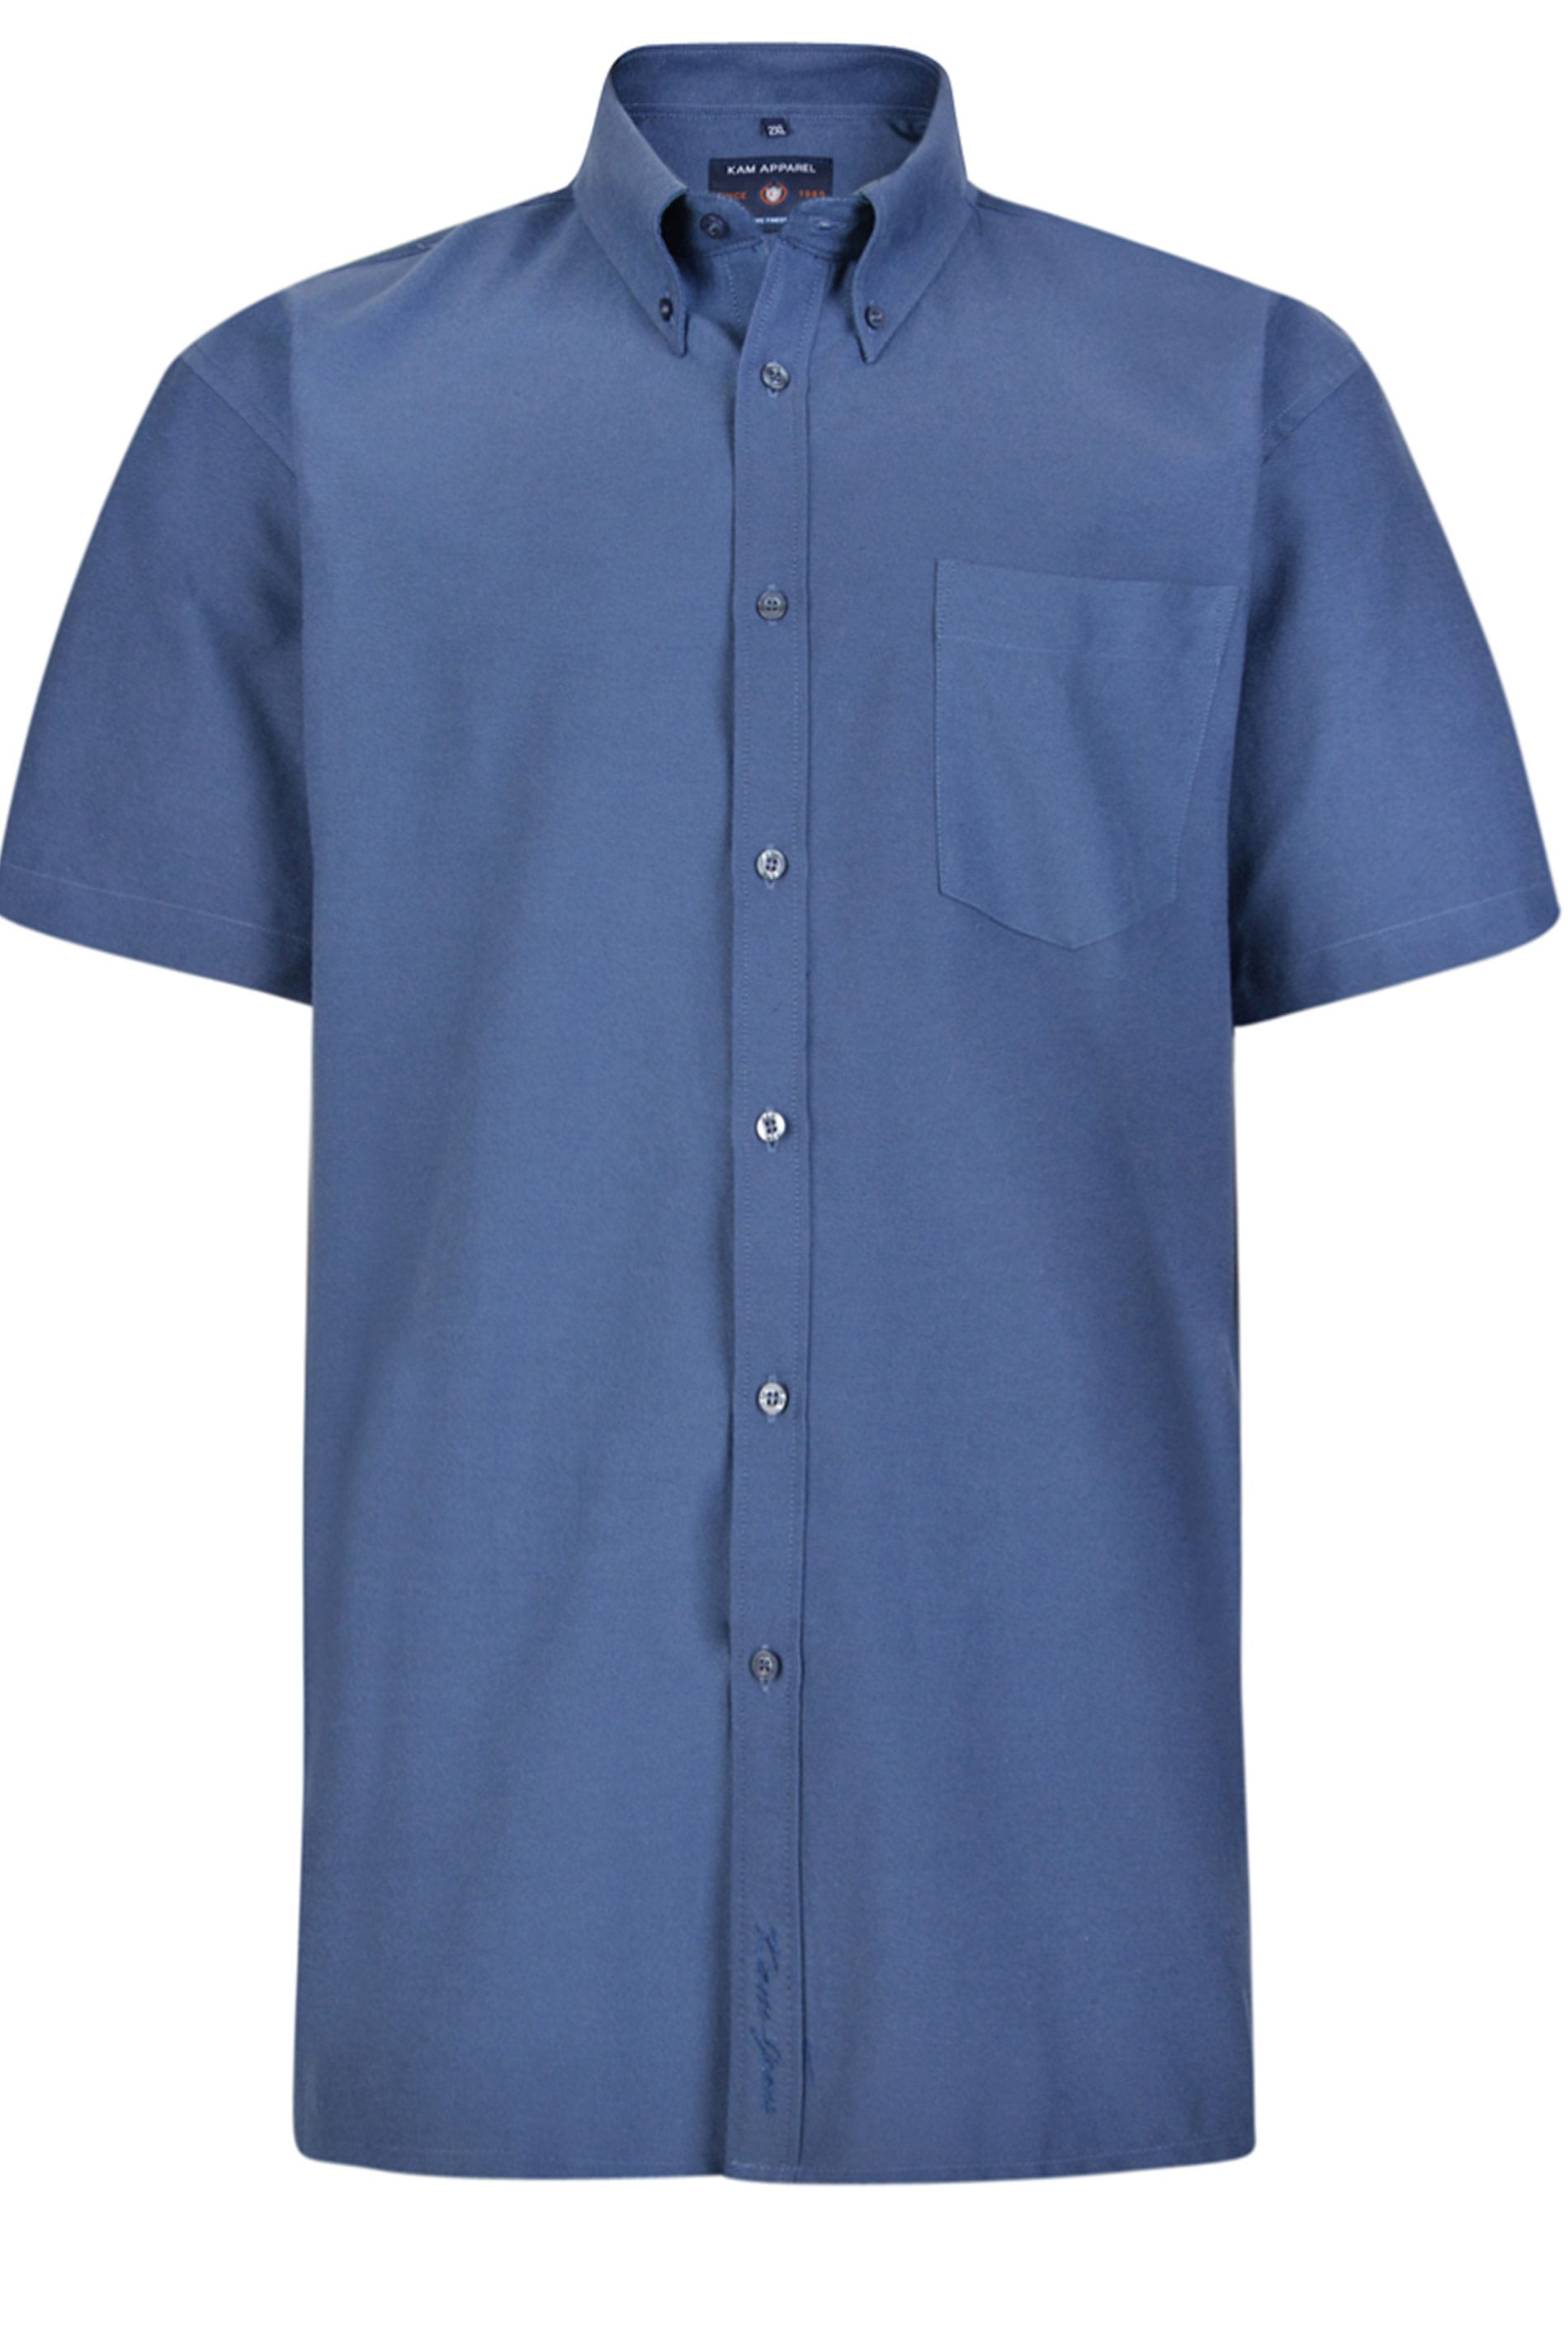 KAM Navy Oxford Short Sleeve Shirt